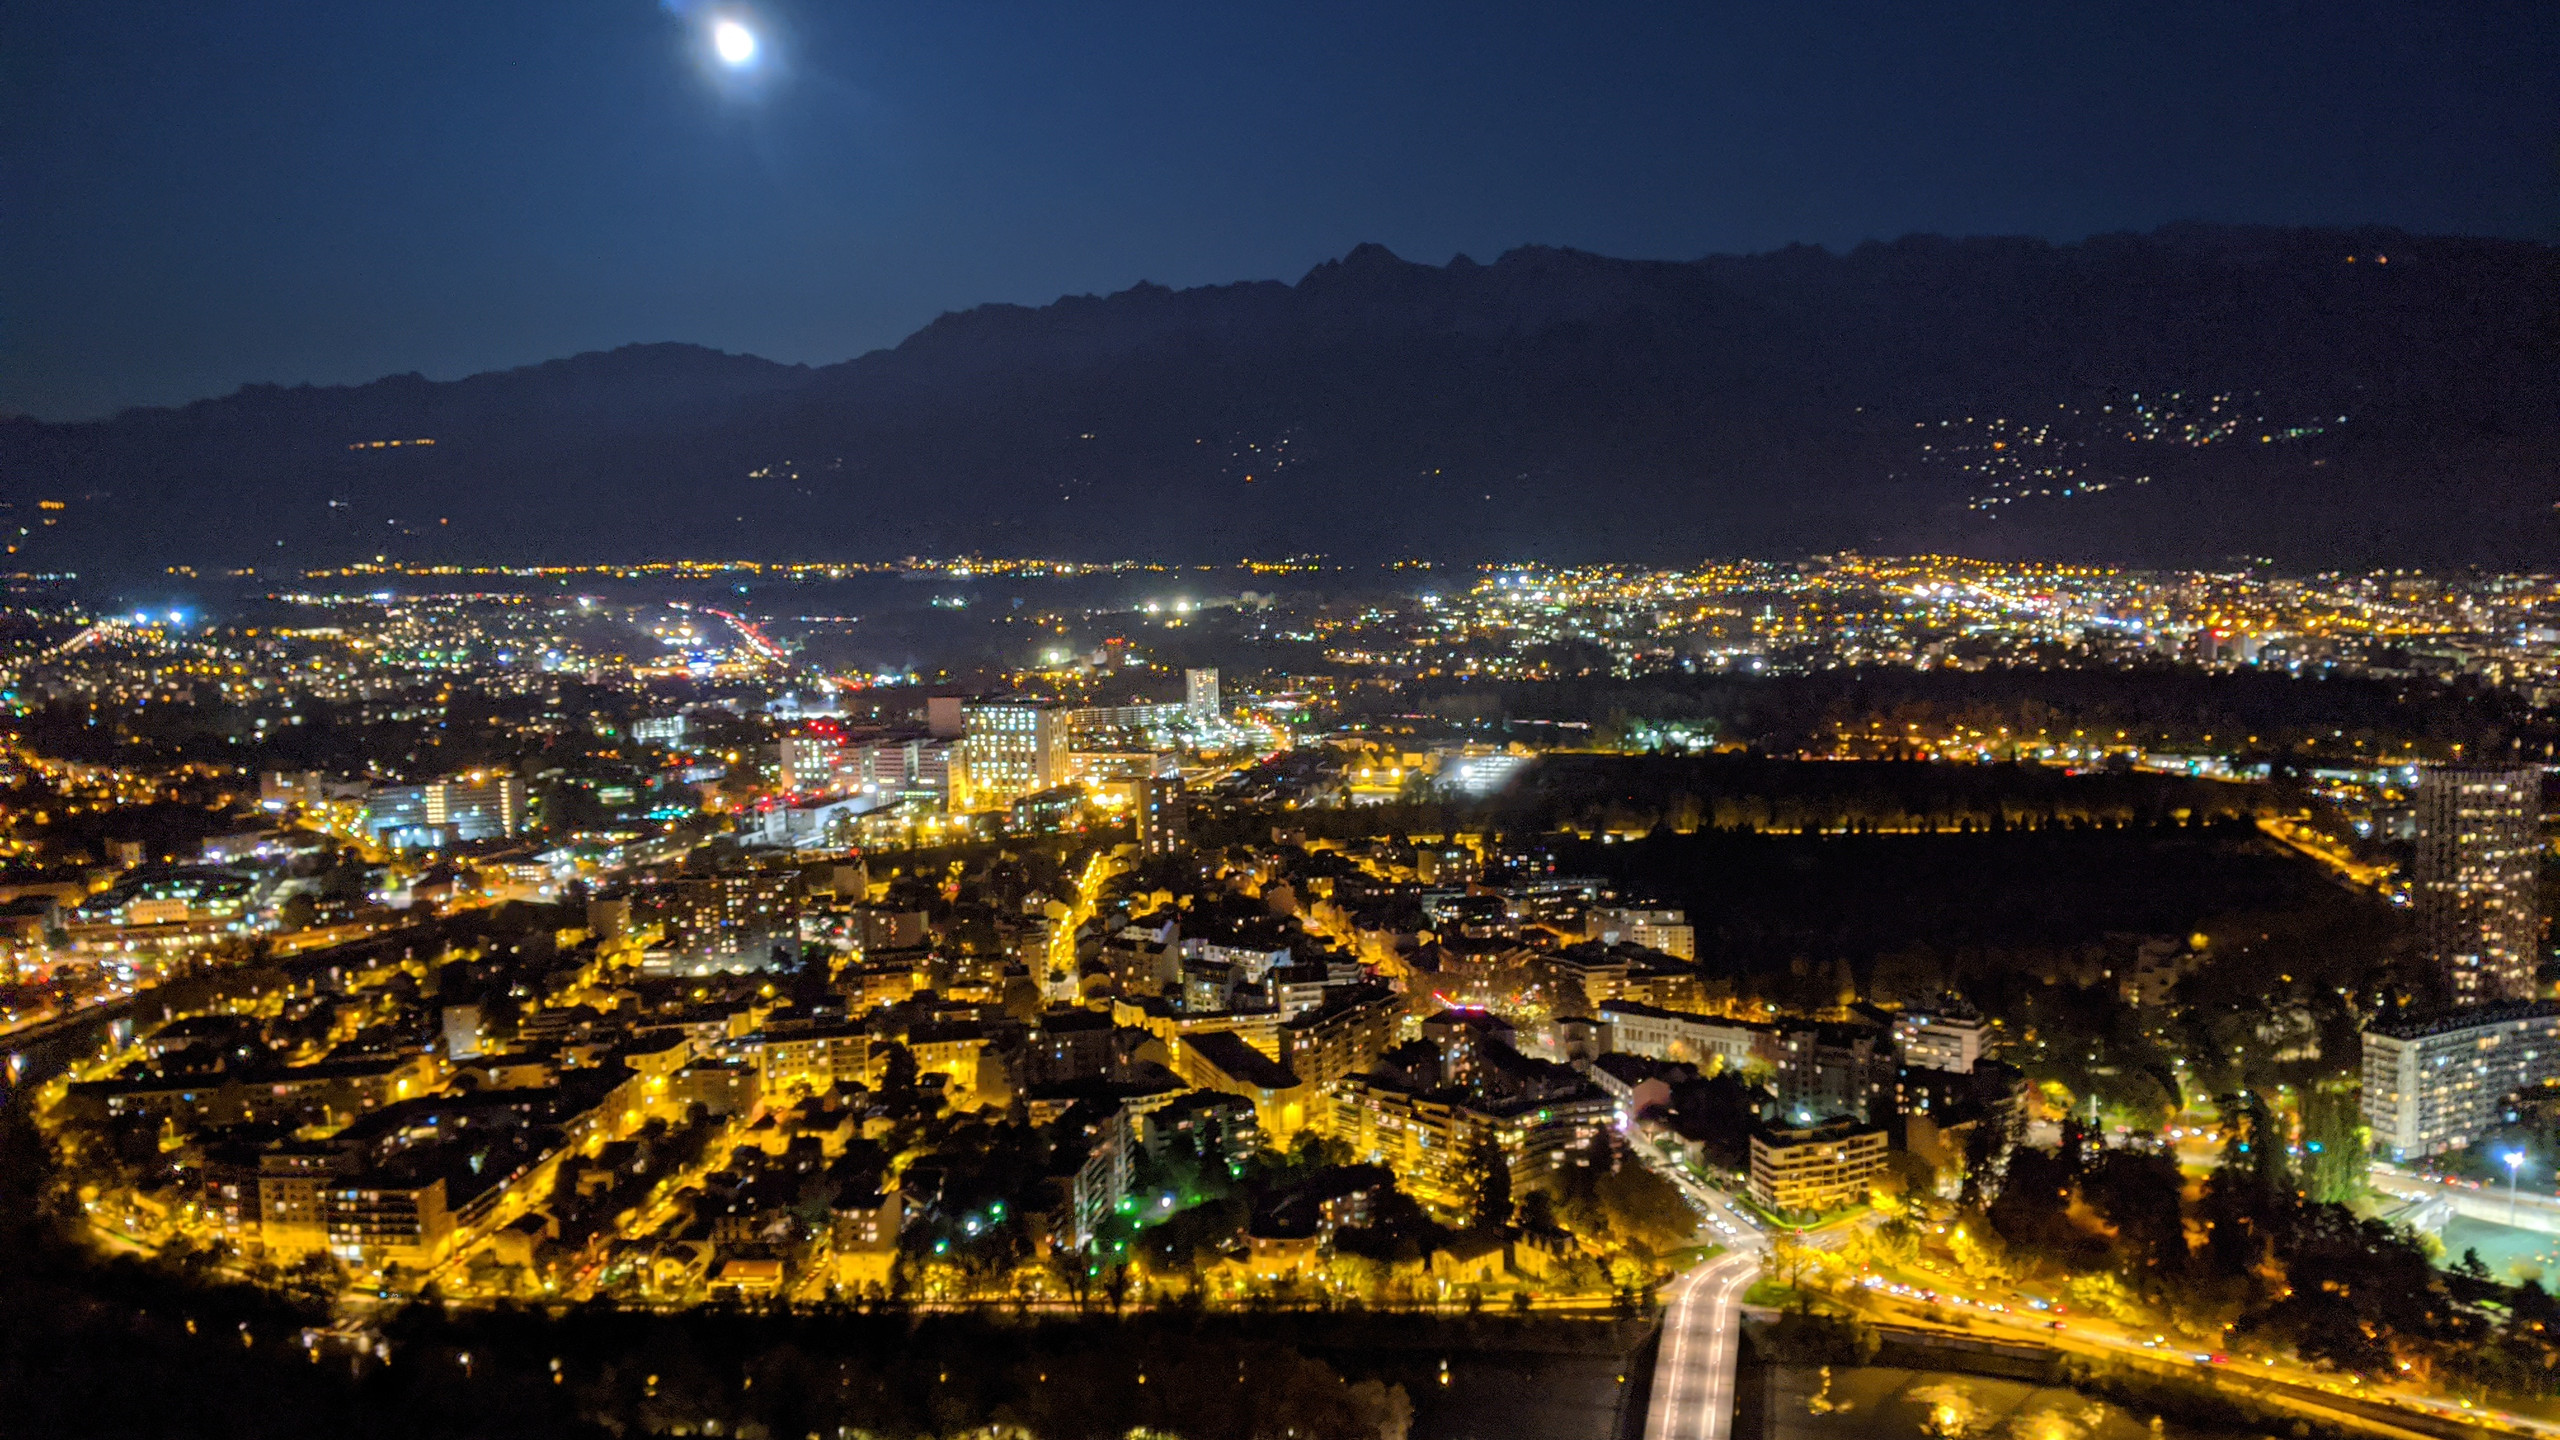 A view Grenoble city from the top of Bastille